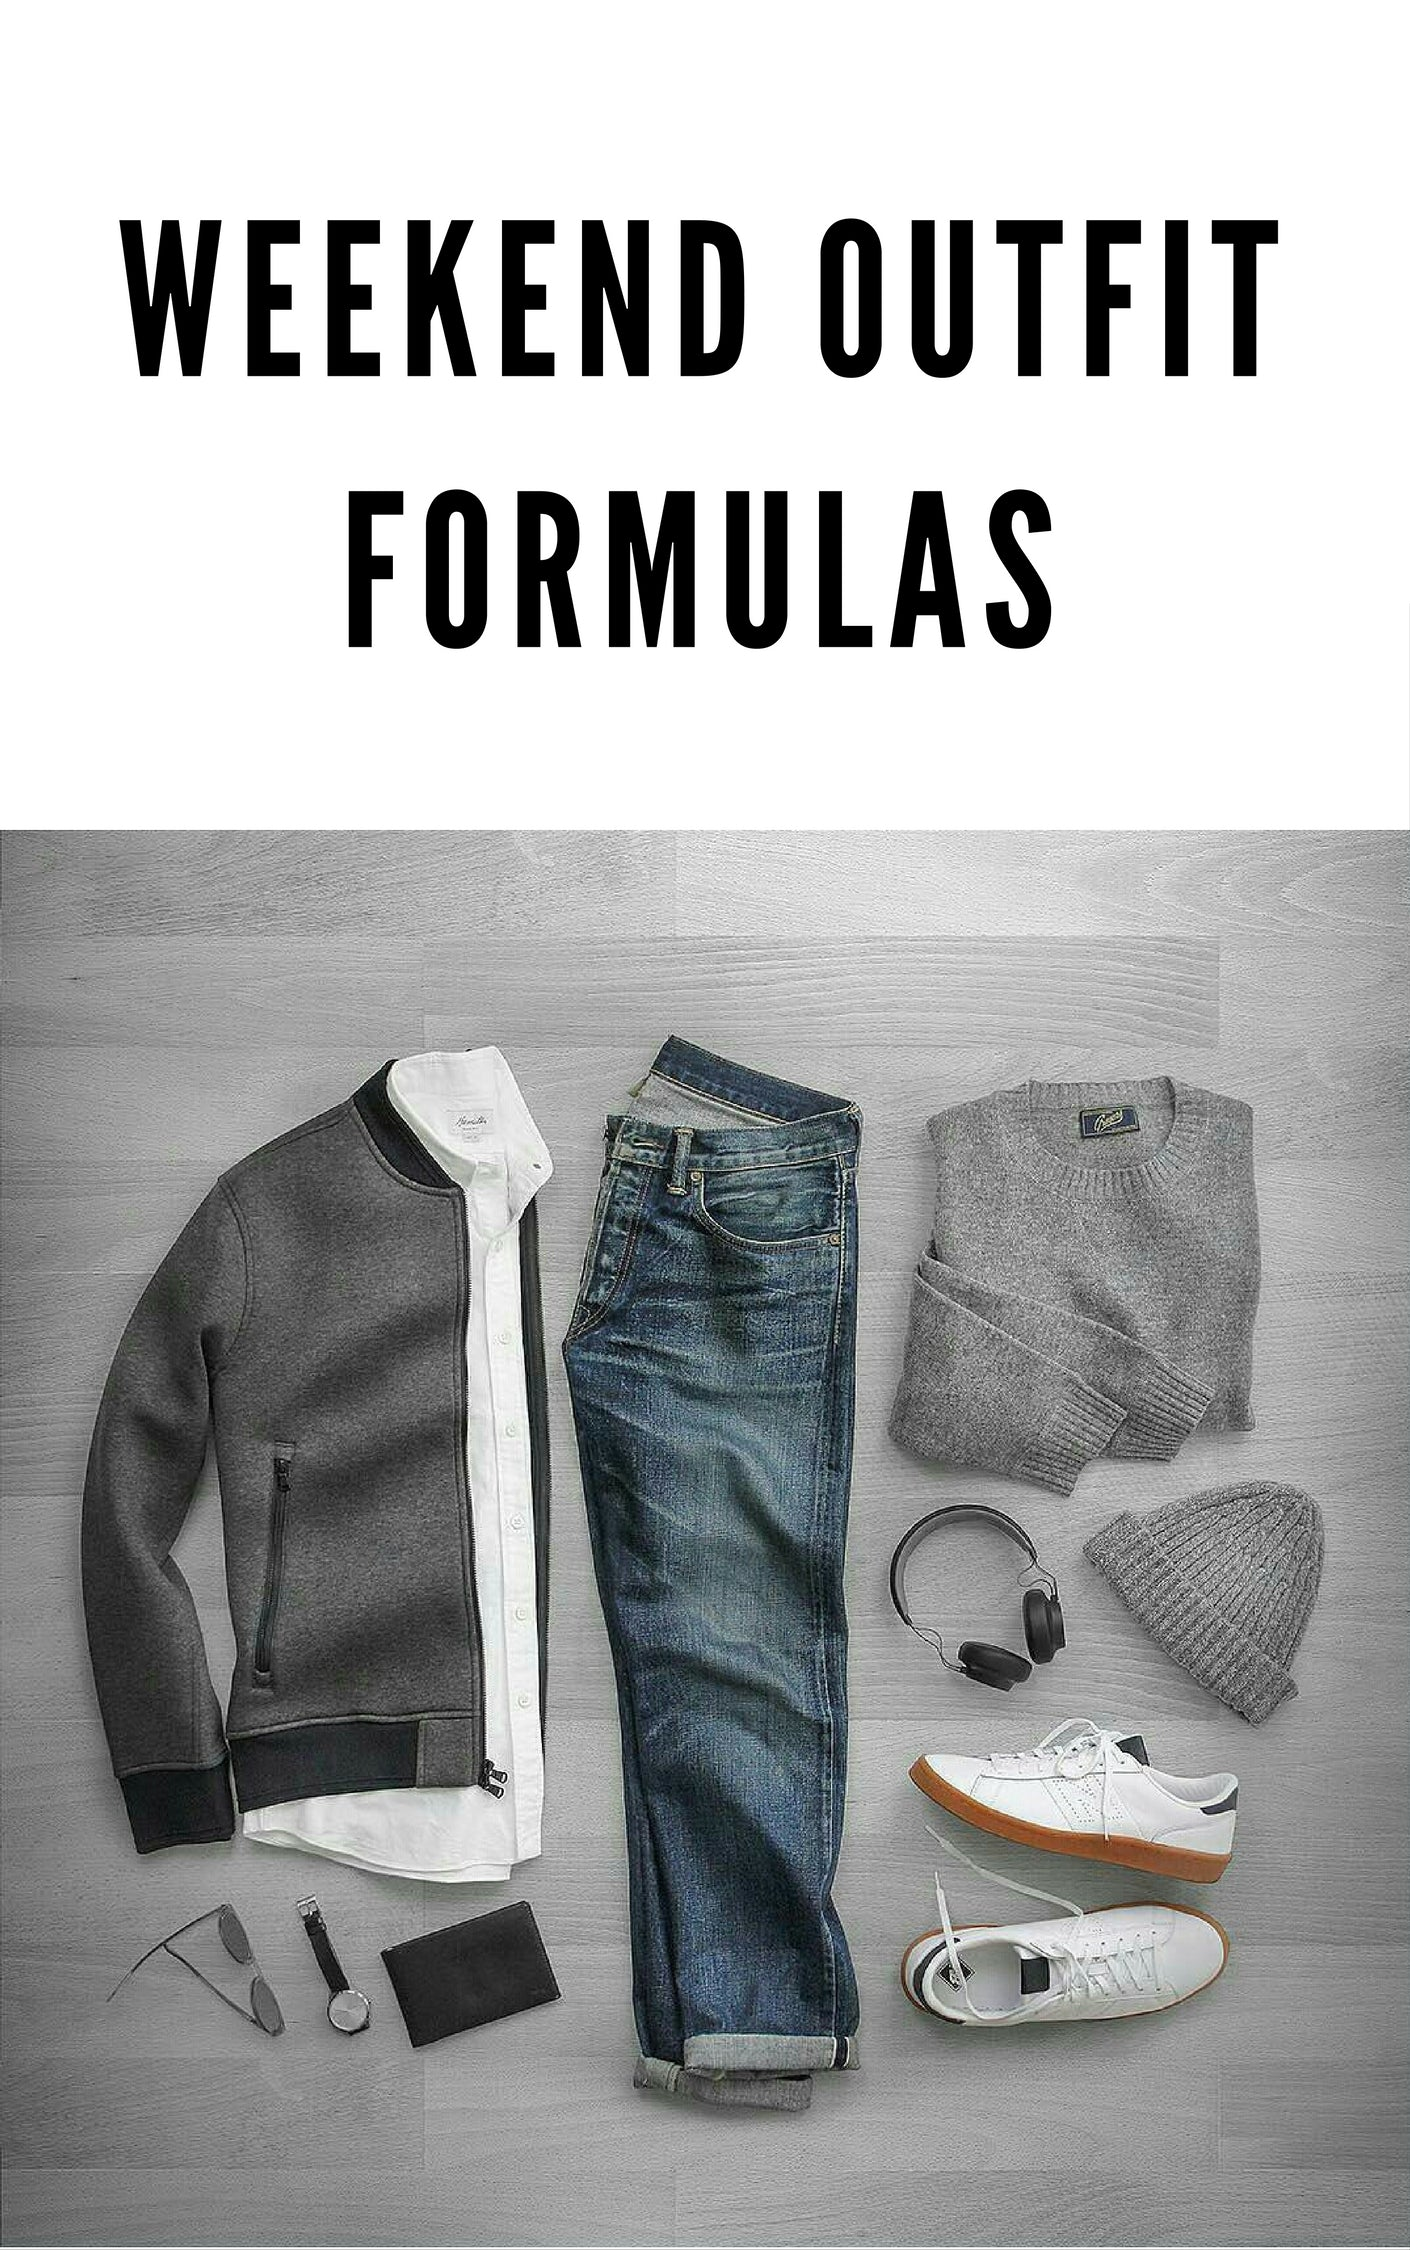 WEEKEND OUTFIT FORMULAS